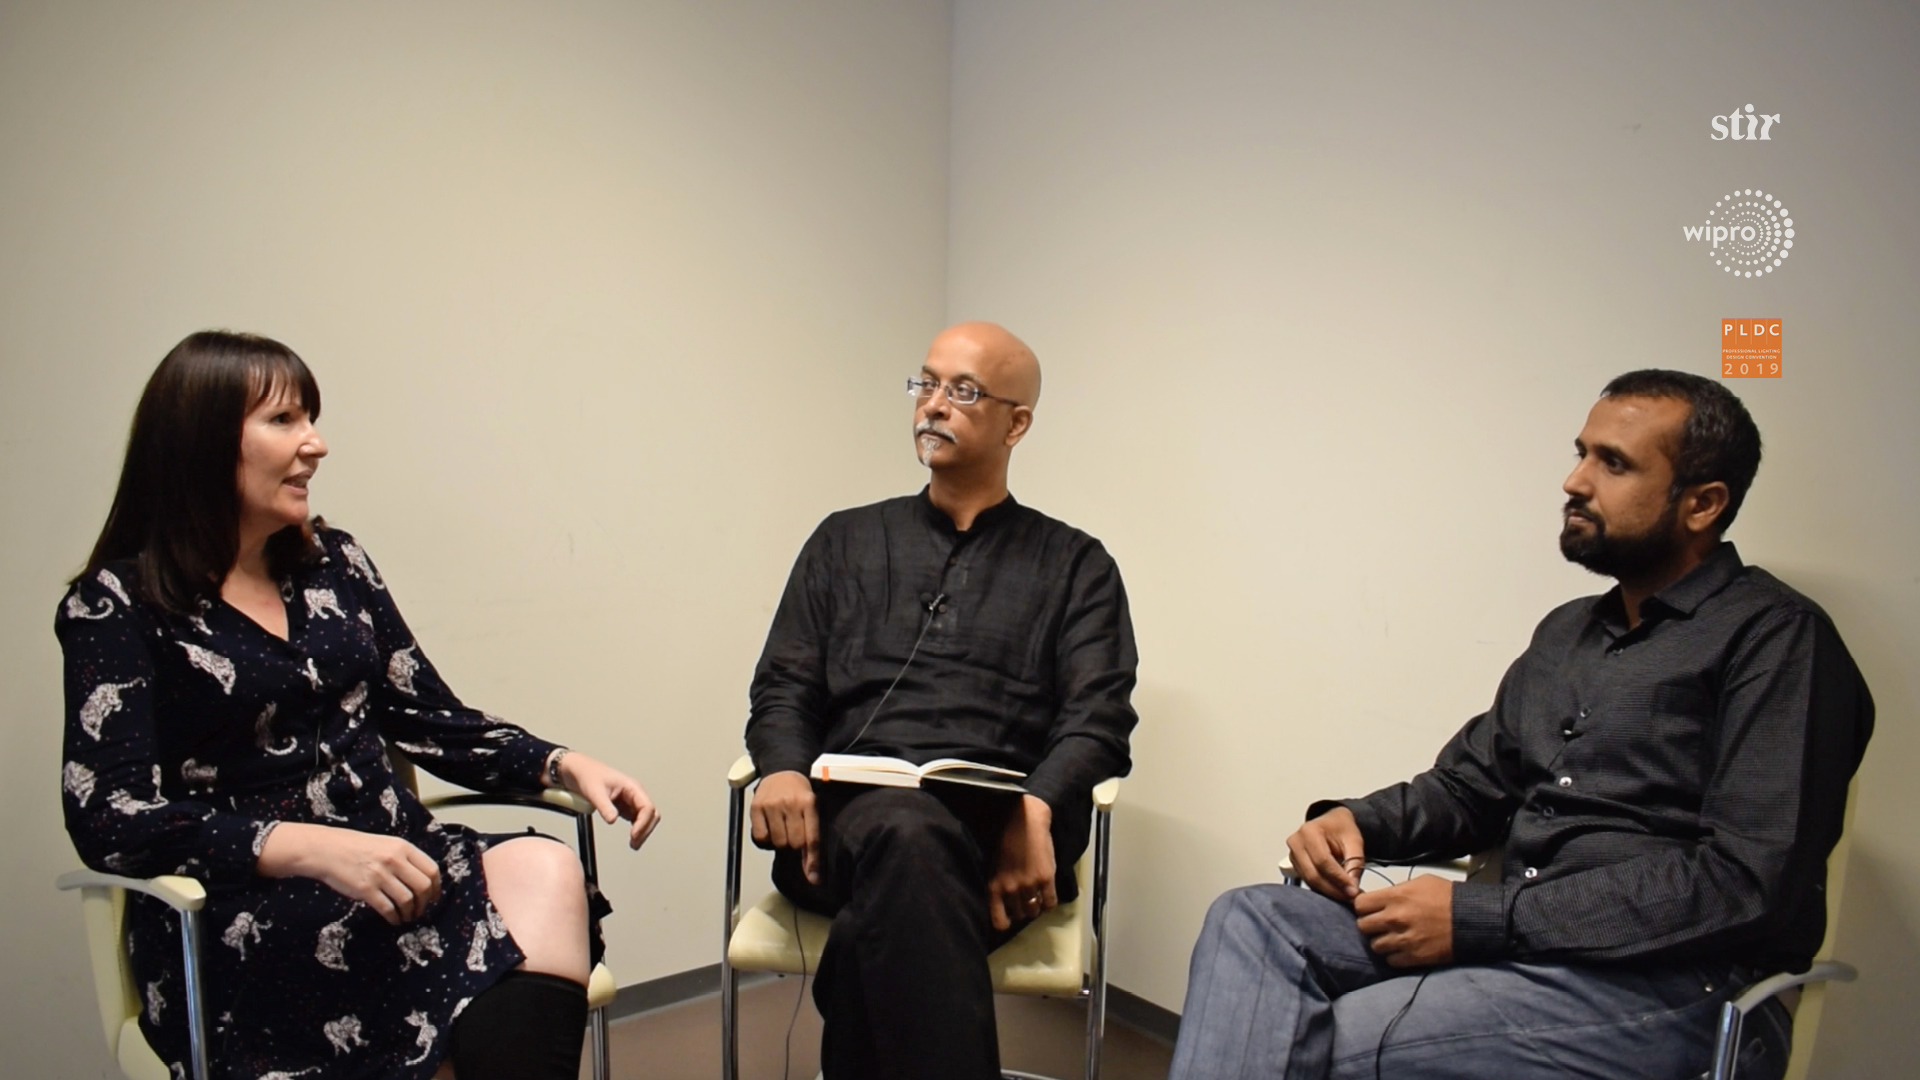 Linus Lopez (centre) in conversation with lighting designers Lorraine Calcott (left) and Nirmit Jhaveri (right), for Spread the Light | Lorraine Calcott| Nirmit Jhaveri | PLDC 2019 | Spread the Light| STIRworld